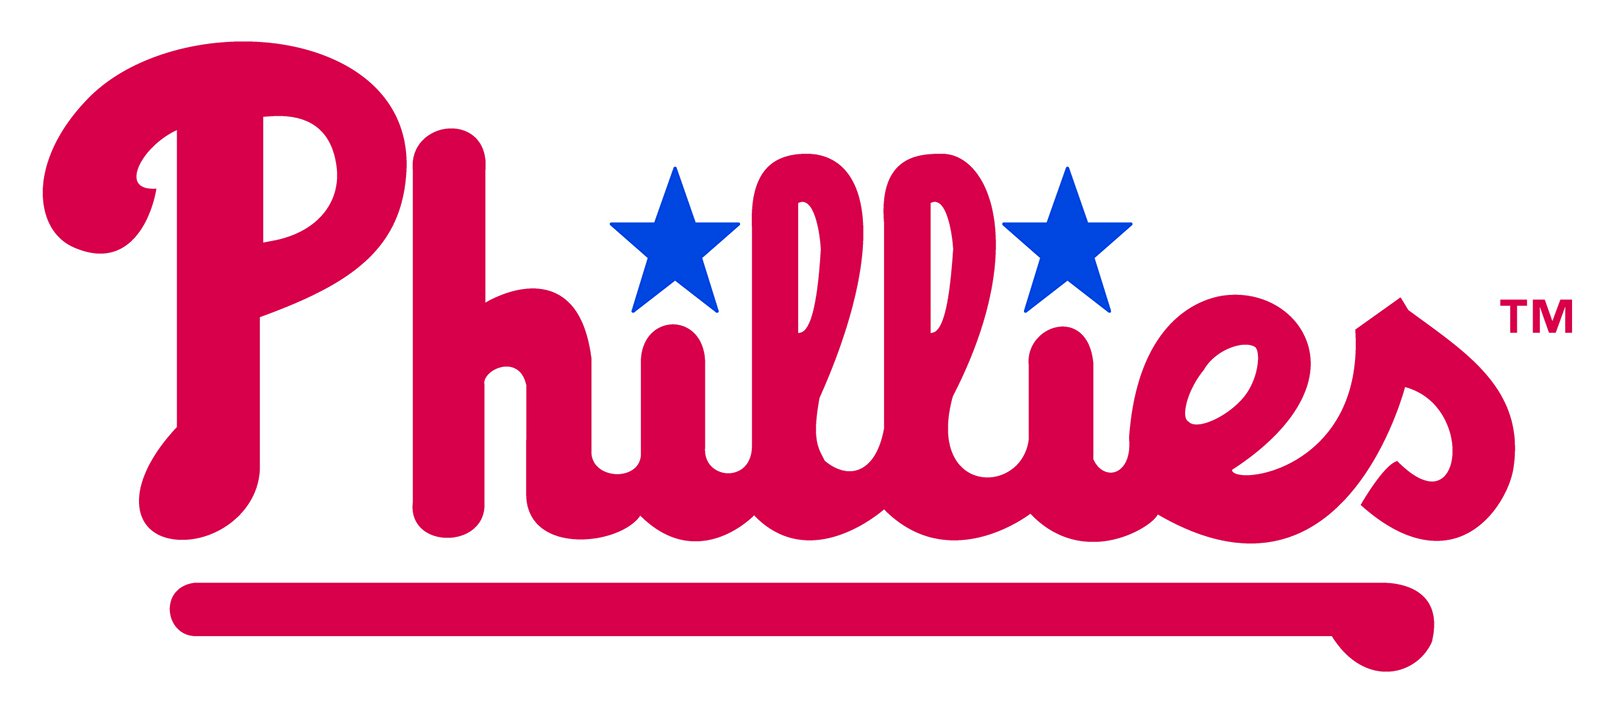 philadelphia phillies logo phillies symbol meaning history and rh 1000logos net phillies logo pics